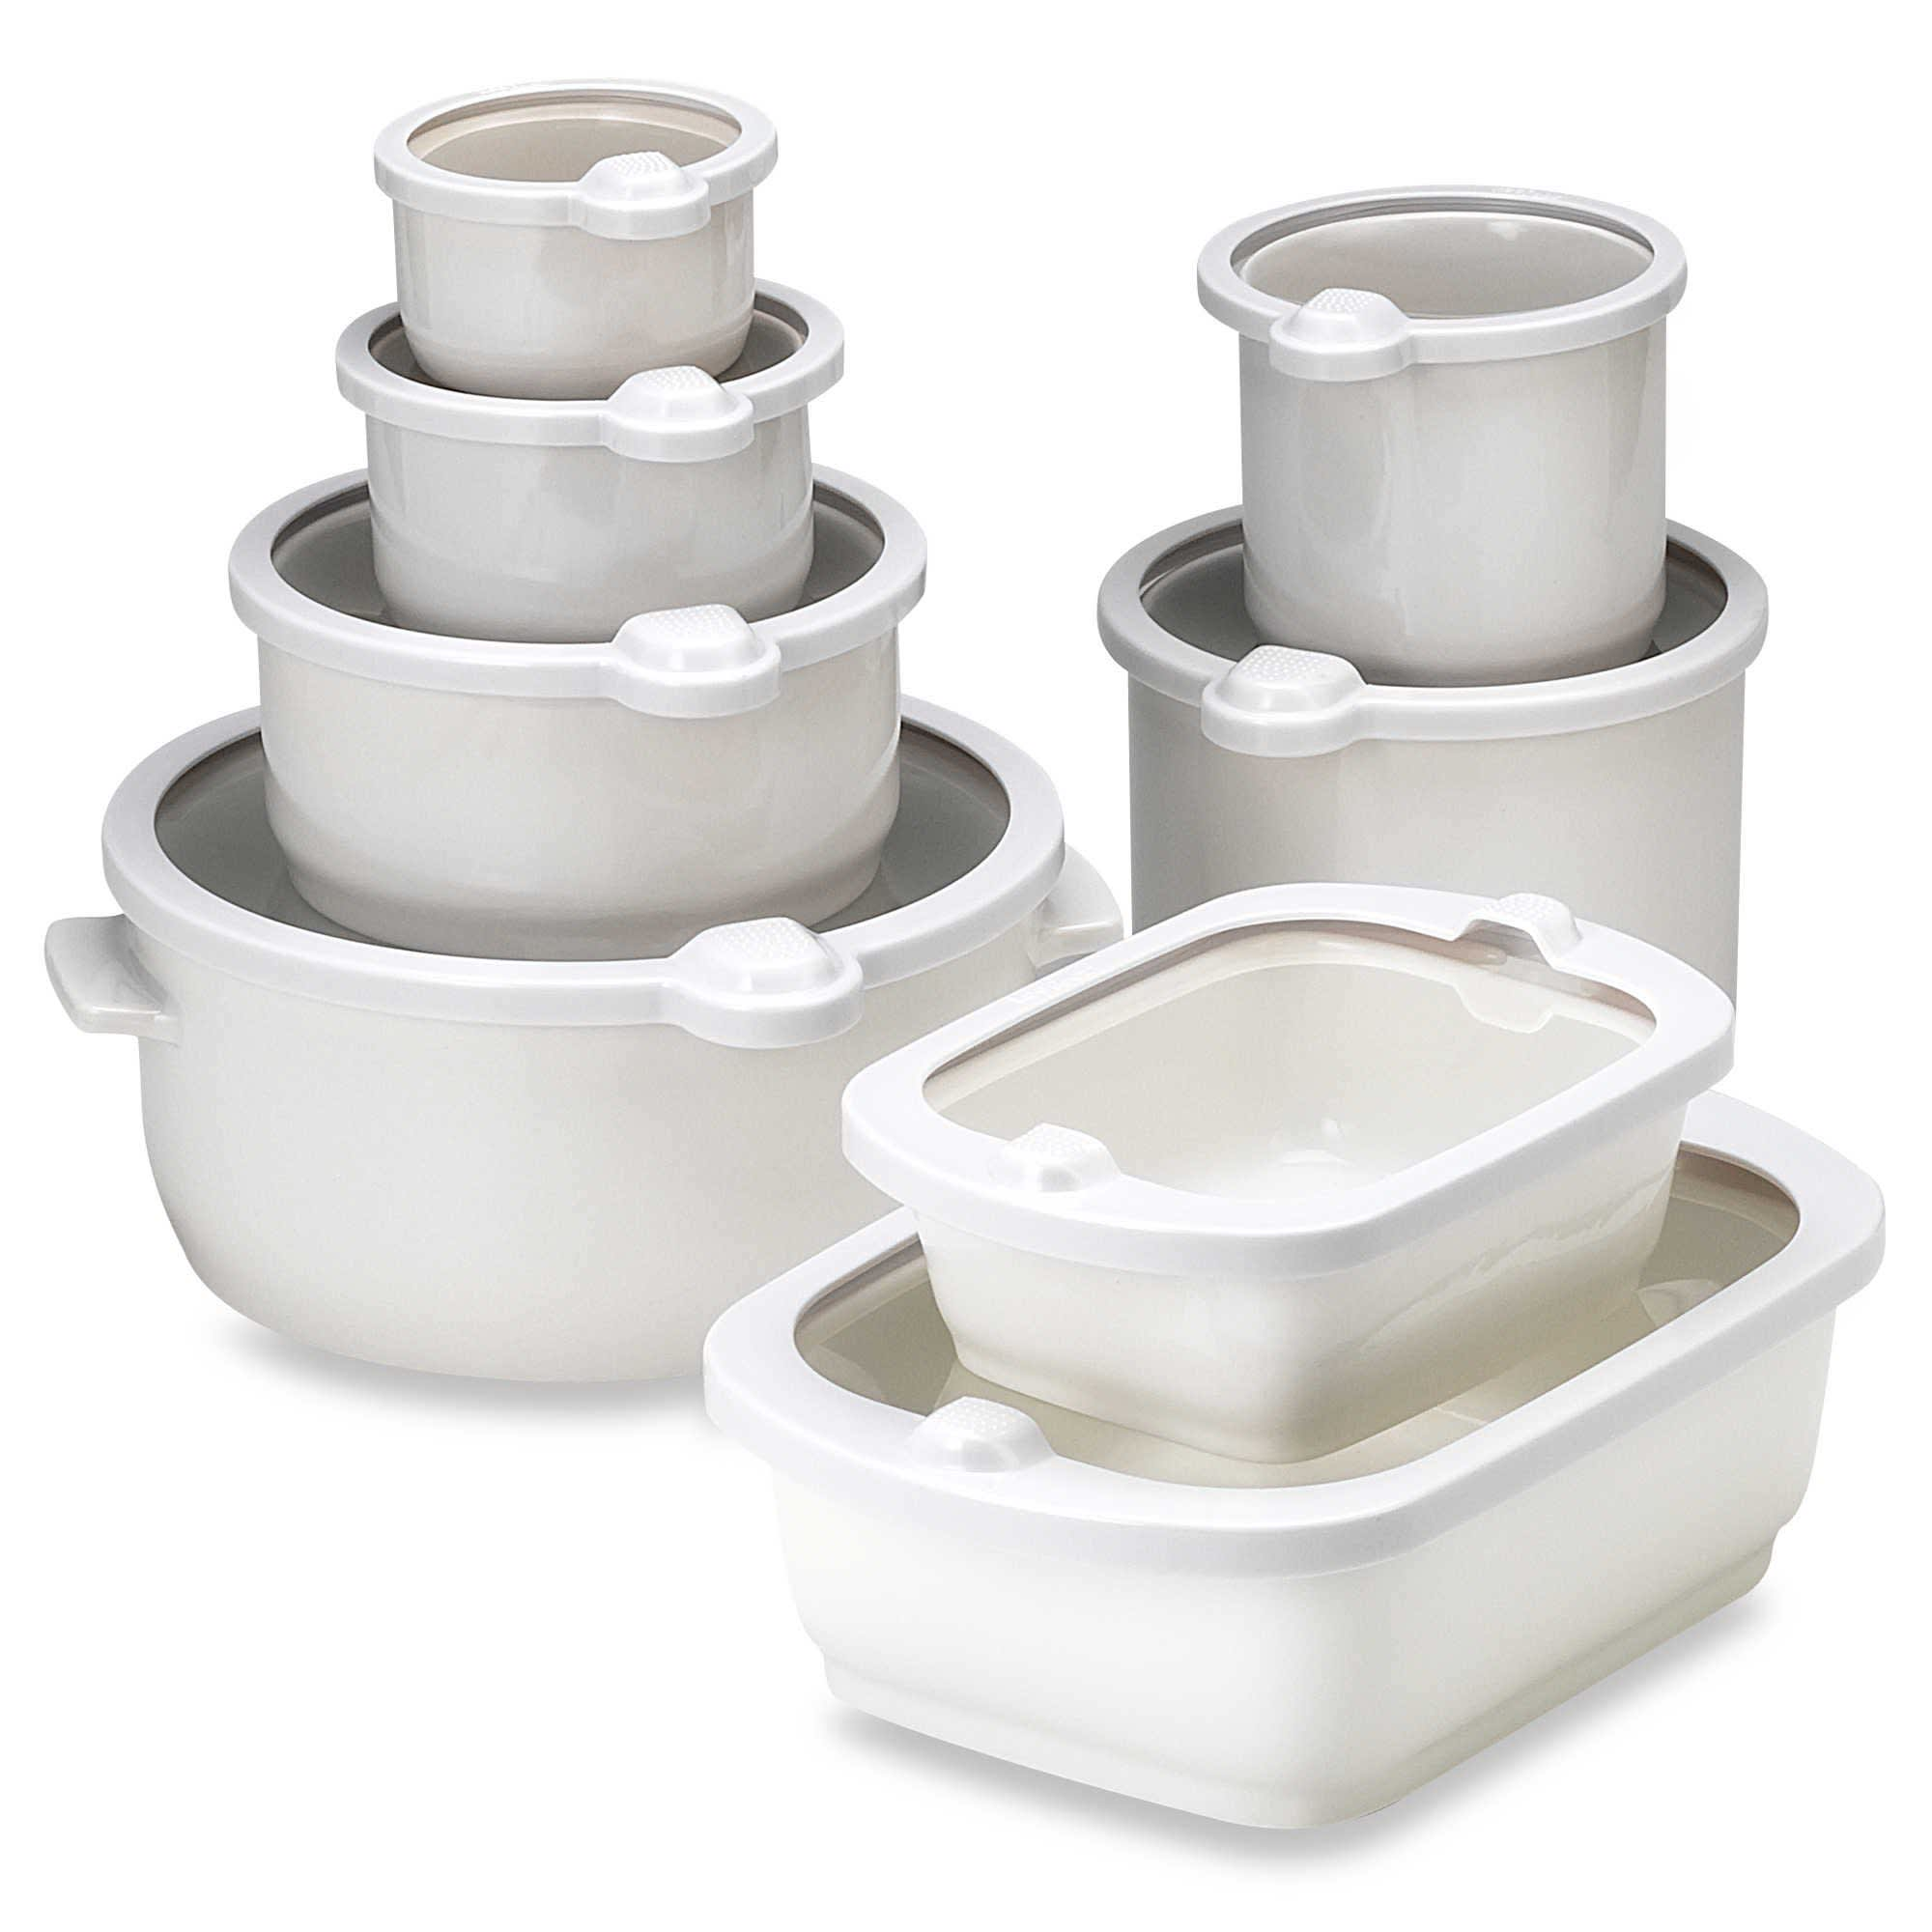 7 Extra-Large Food Storage Containers for Make-Ahead Meals: gallery image 6